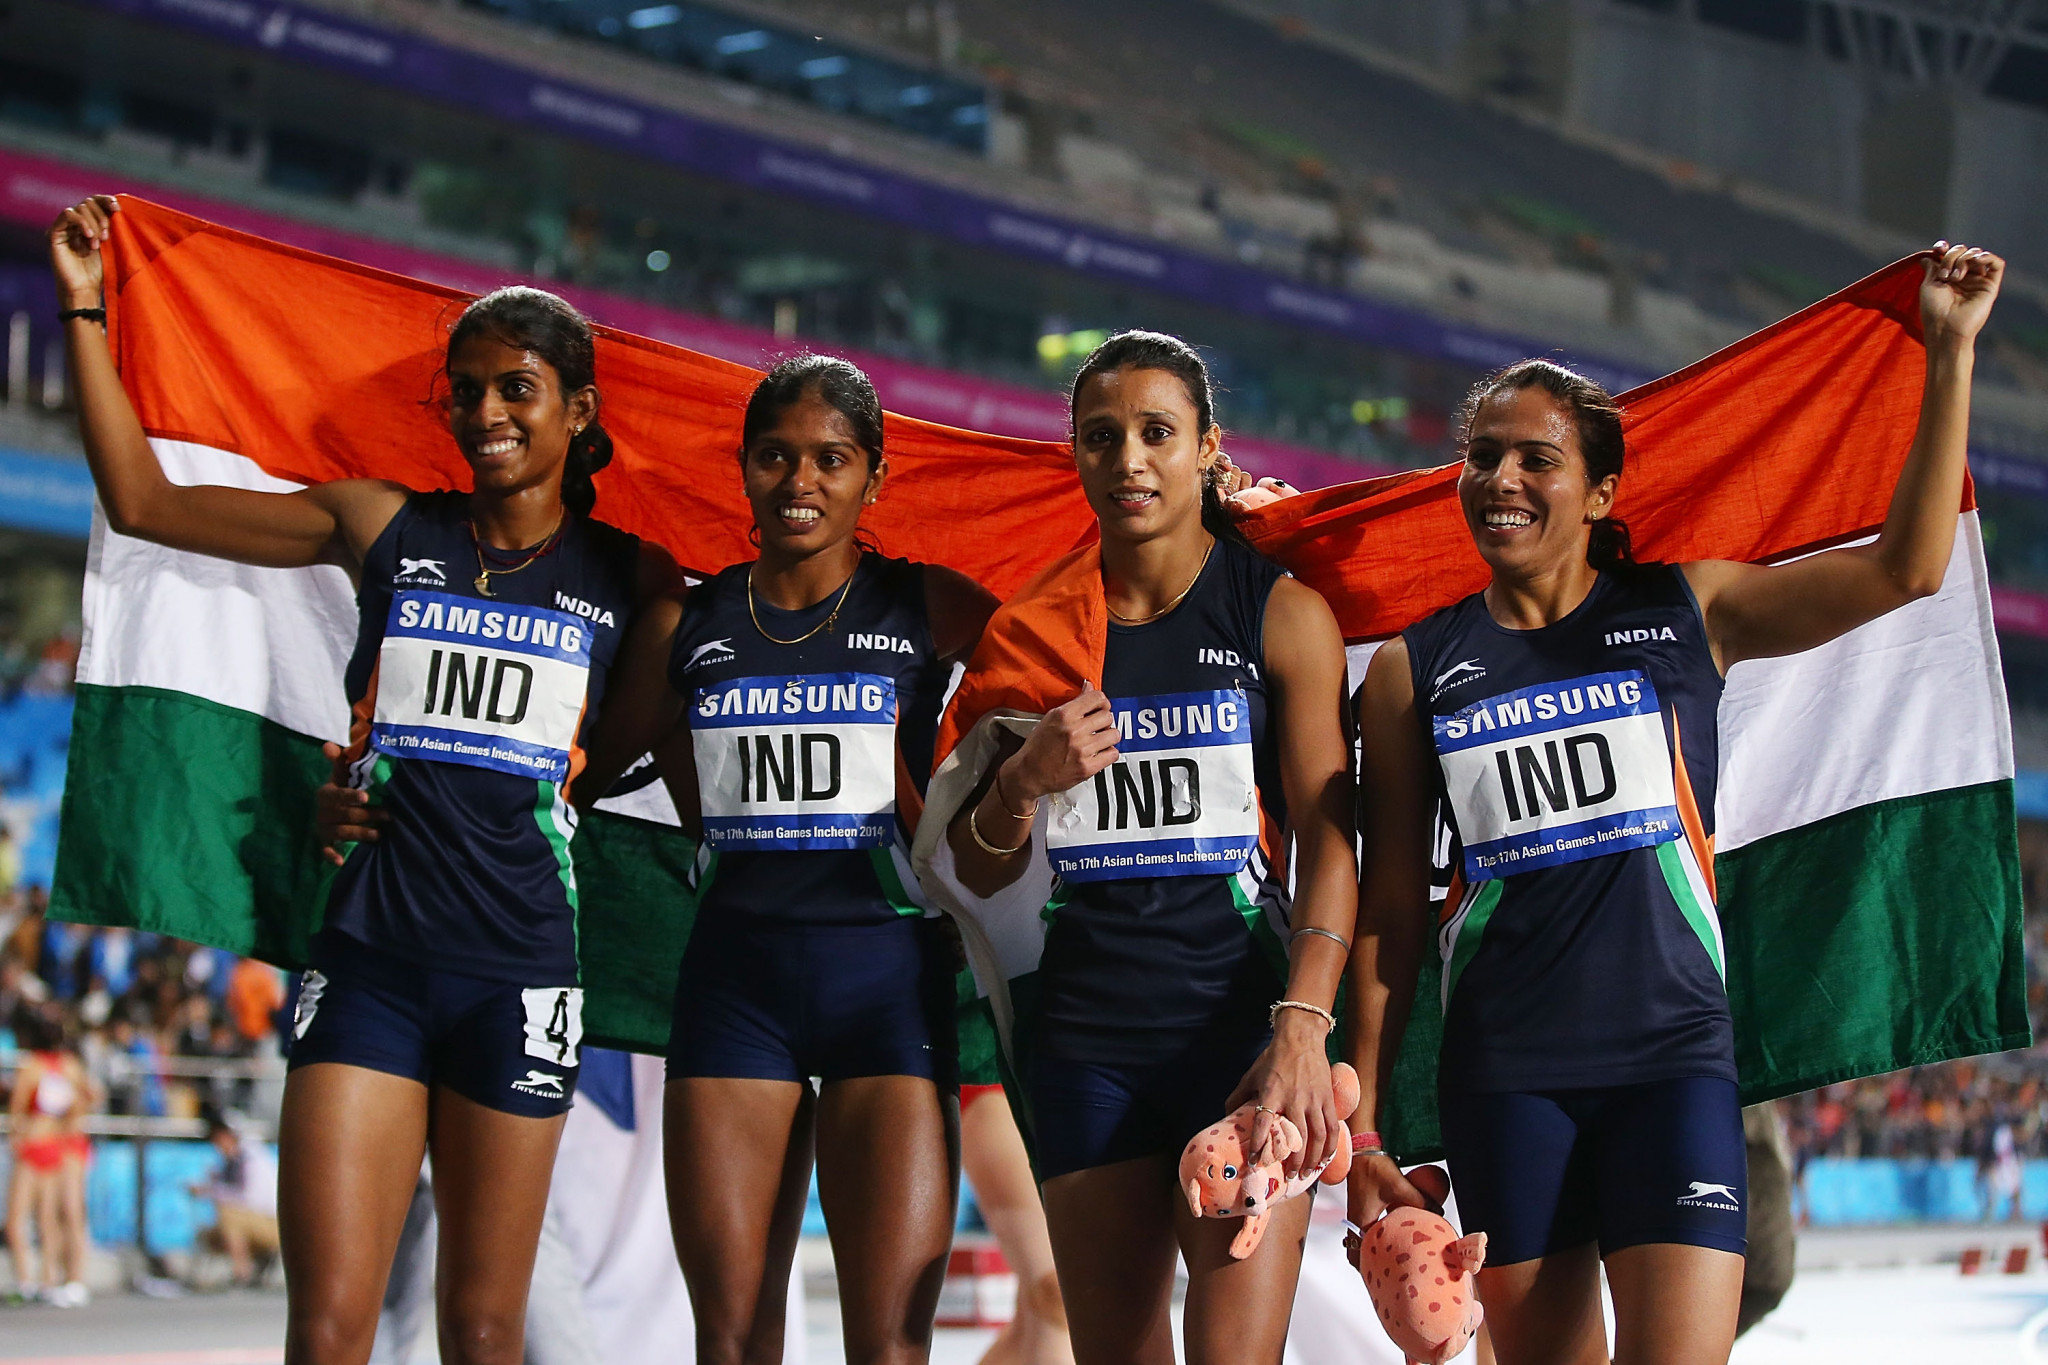 Tintu Lukka was a member of the Indian 4x400m relay team which won gold in Incheon ©Getty Images